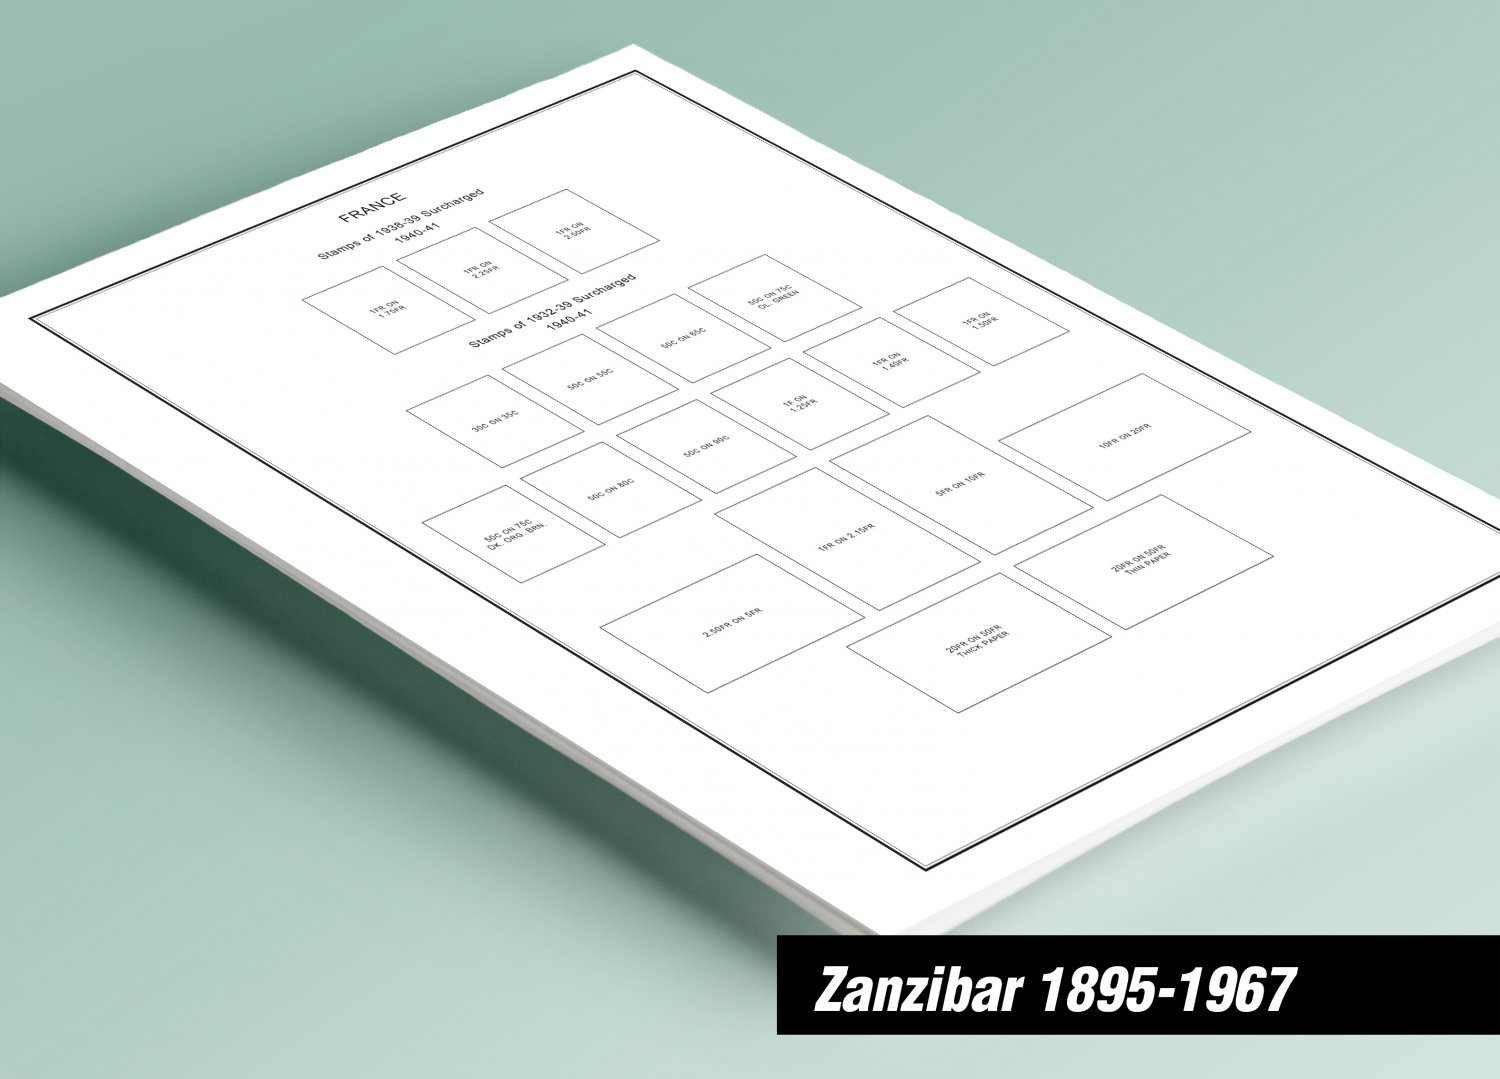 PRINTED ZANZIBAR 1895-1967 STAMP ALBUM PAGES (25 pages)